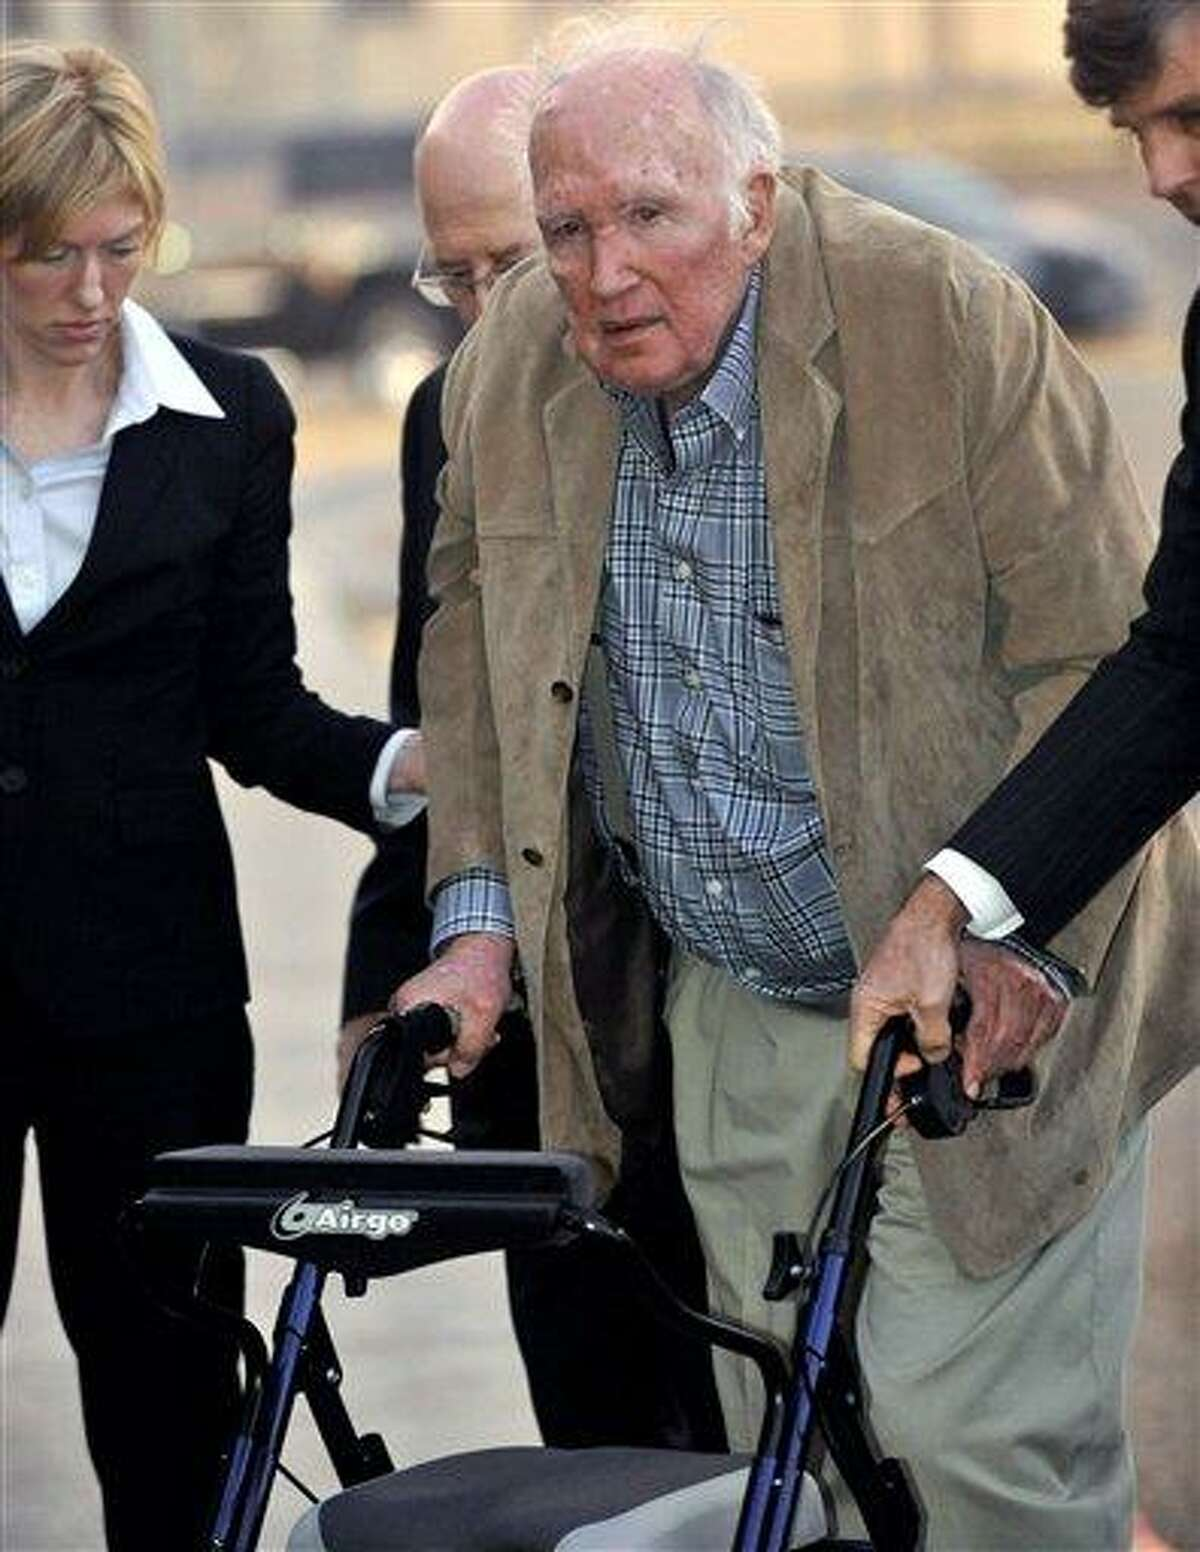 """Millionaire artist Stanley Marsh 3 is booked into the Potter County, Texas, Detention Center Stanley Marsh 3, an eccentric millionaire artist best known for his """"Cadillac Ranch"""" art display along an interstate in the Texas Panhandle, has settled lawsuits from 10 teenagers who allege he paid them for sex acts, attorneys announced Saturday, Feb. 16, 2013. AP Photo/Amarillo Globe-News, Michael Schumacher"""